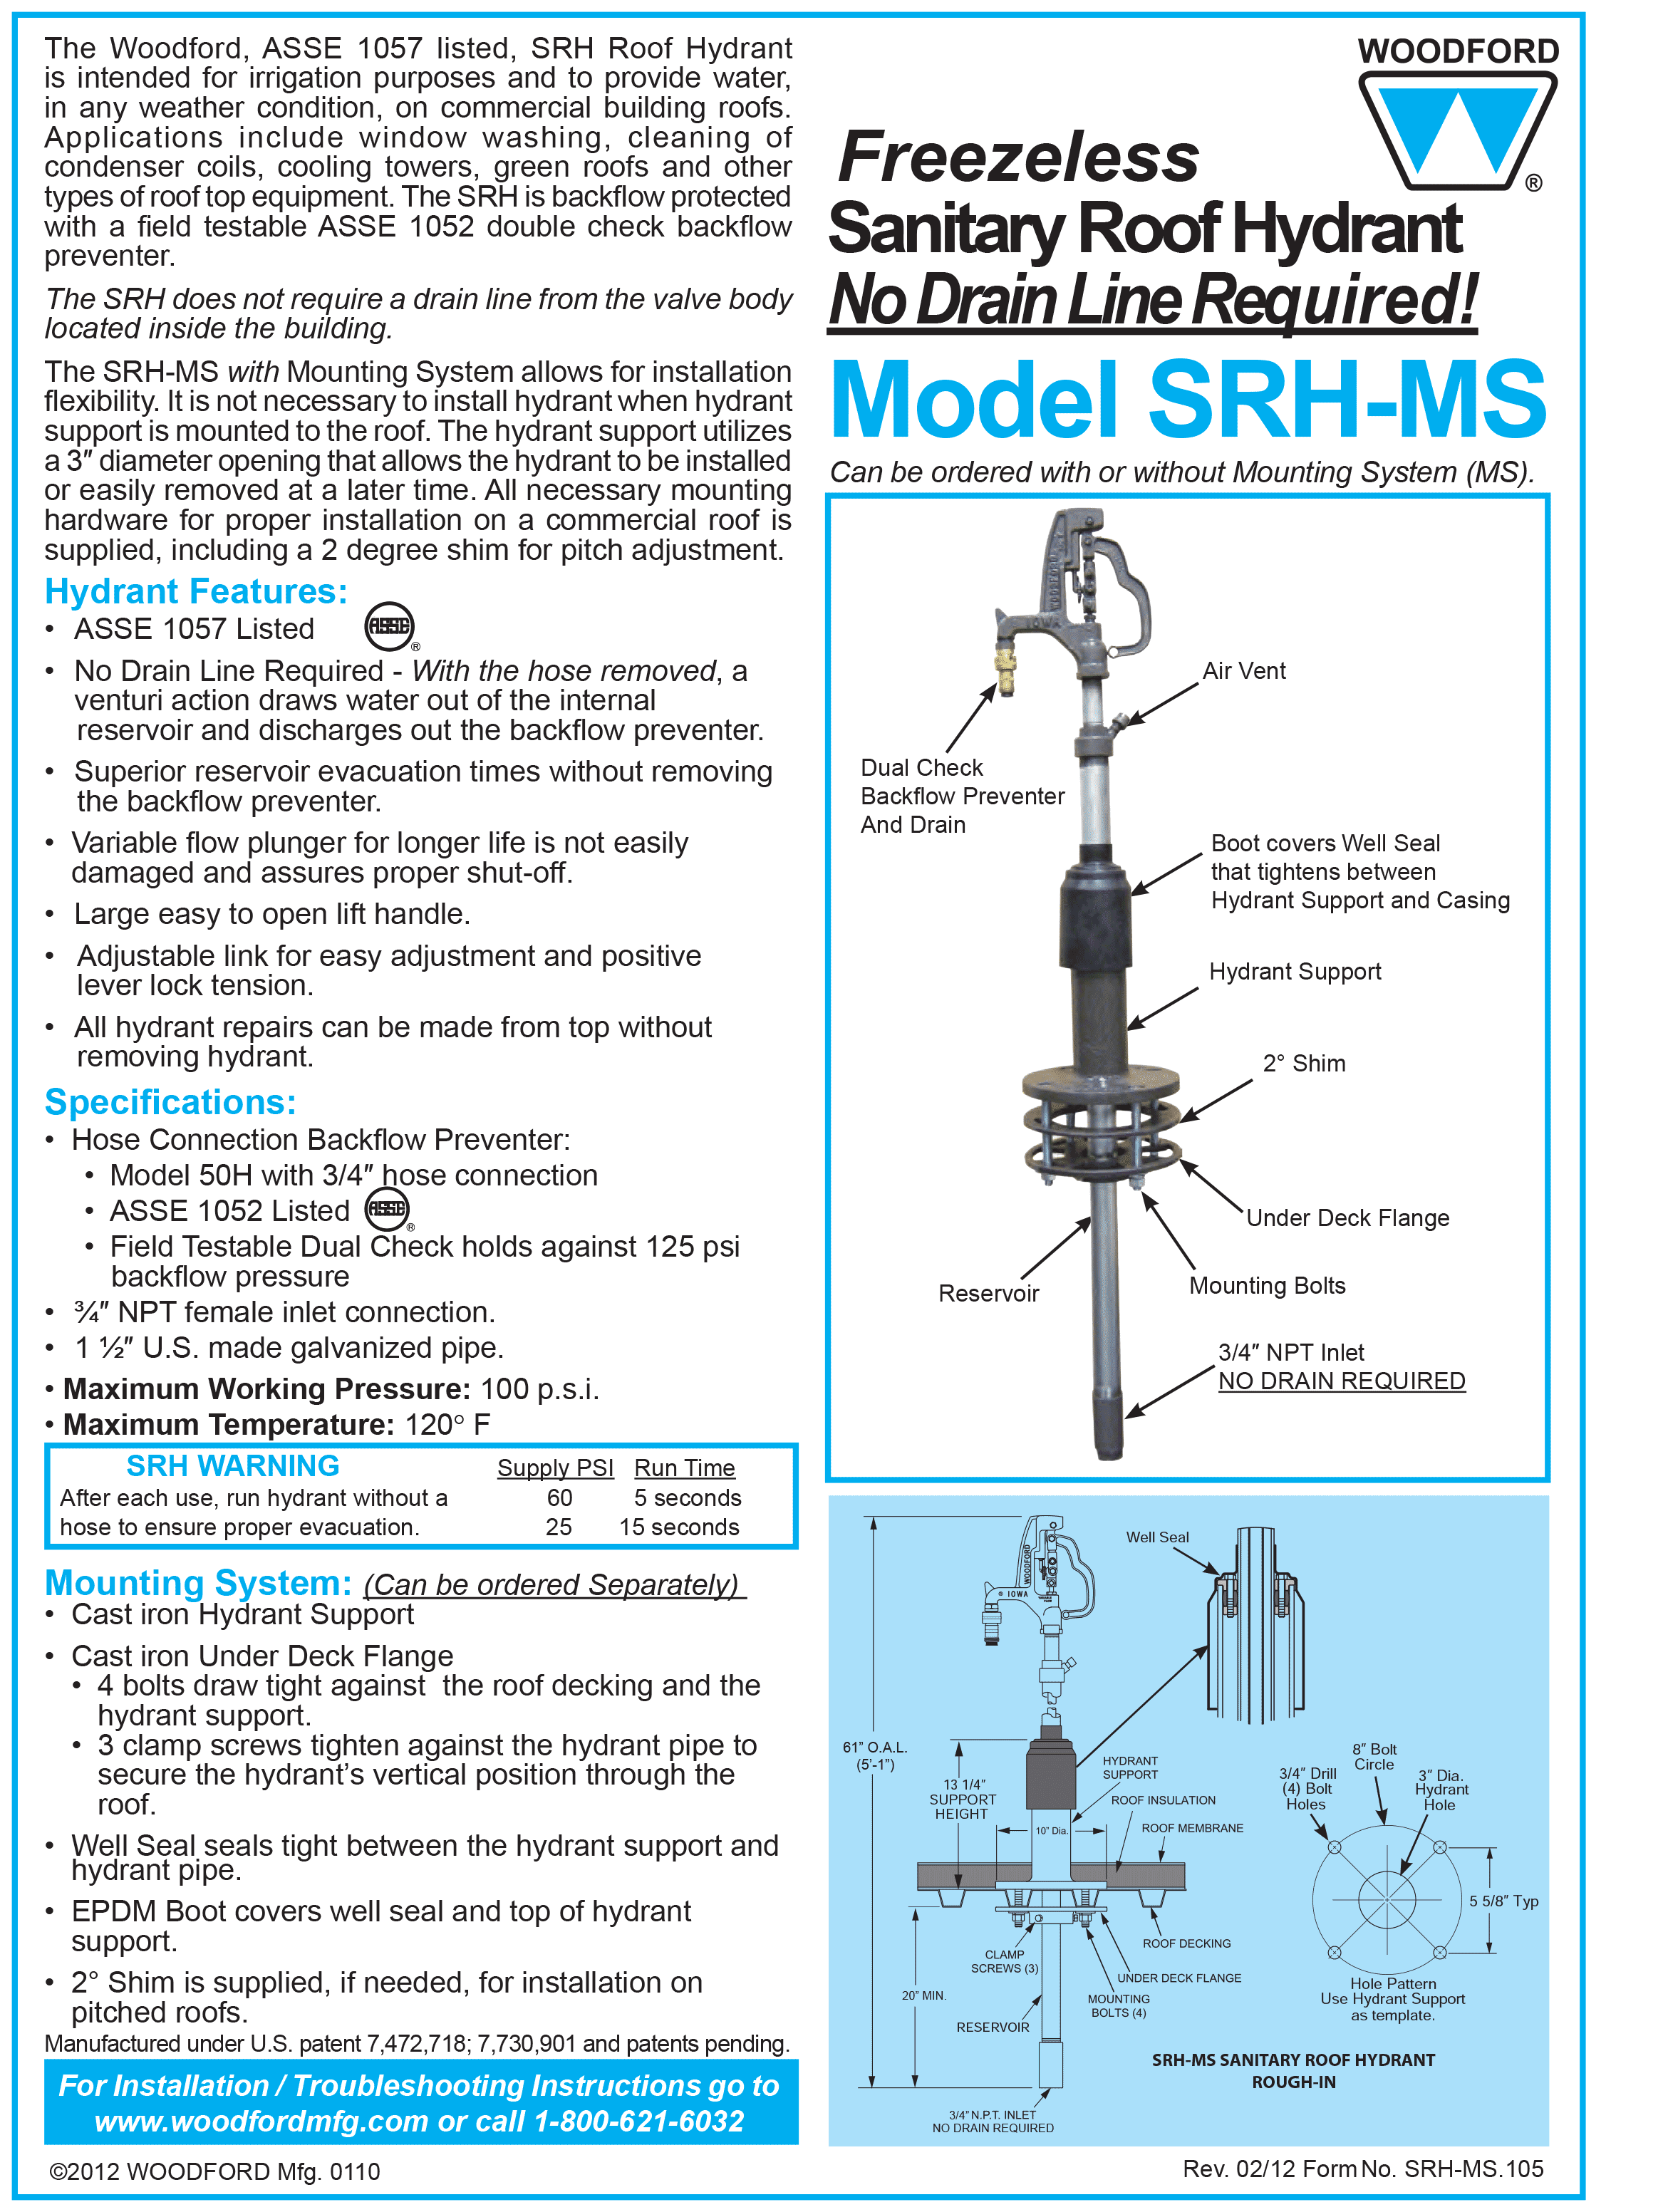 Woodford Model Srh Ms Freezeless Sanitary Roof Hydrant